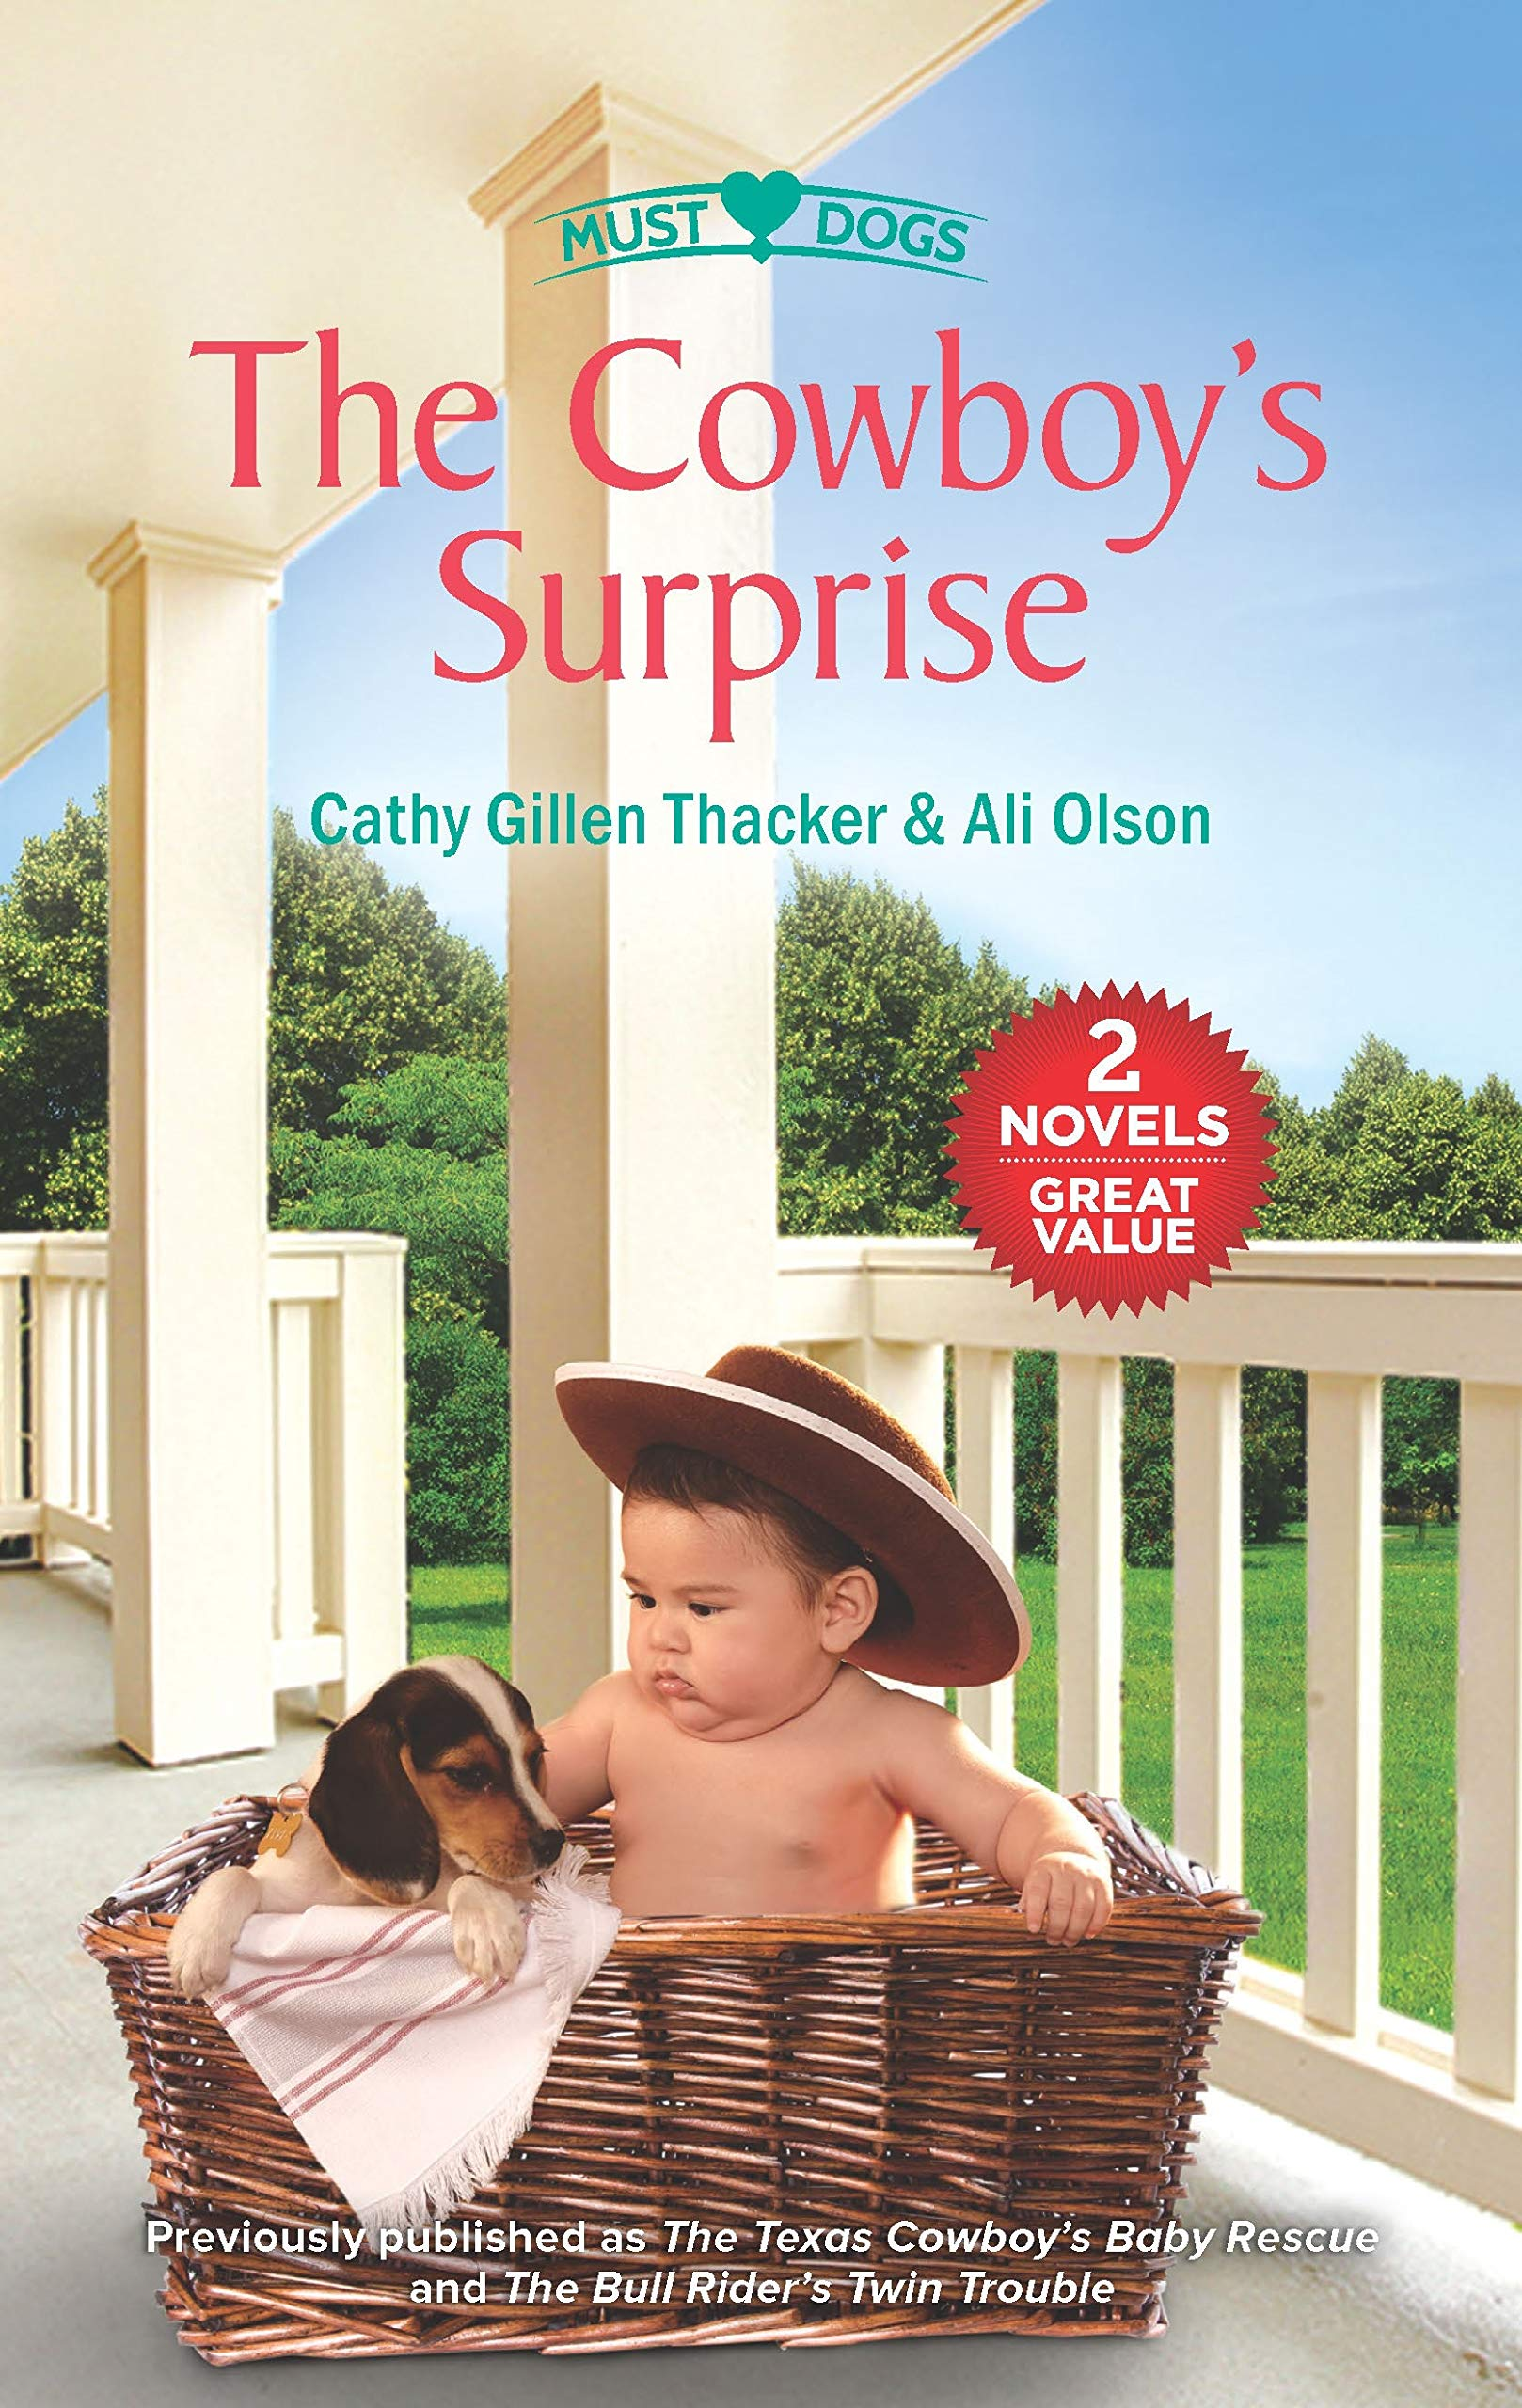 The Cowboy's Surprise: An Anthology